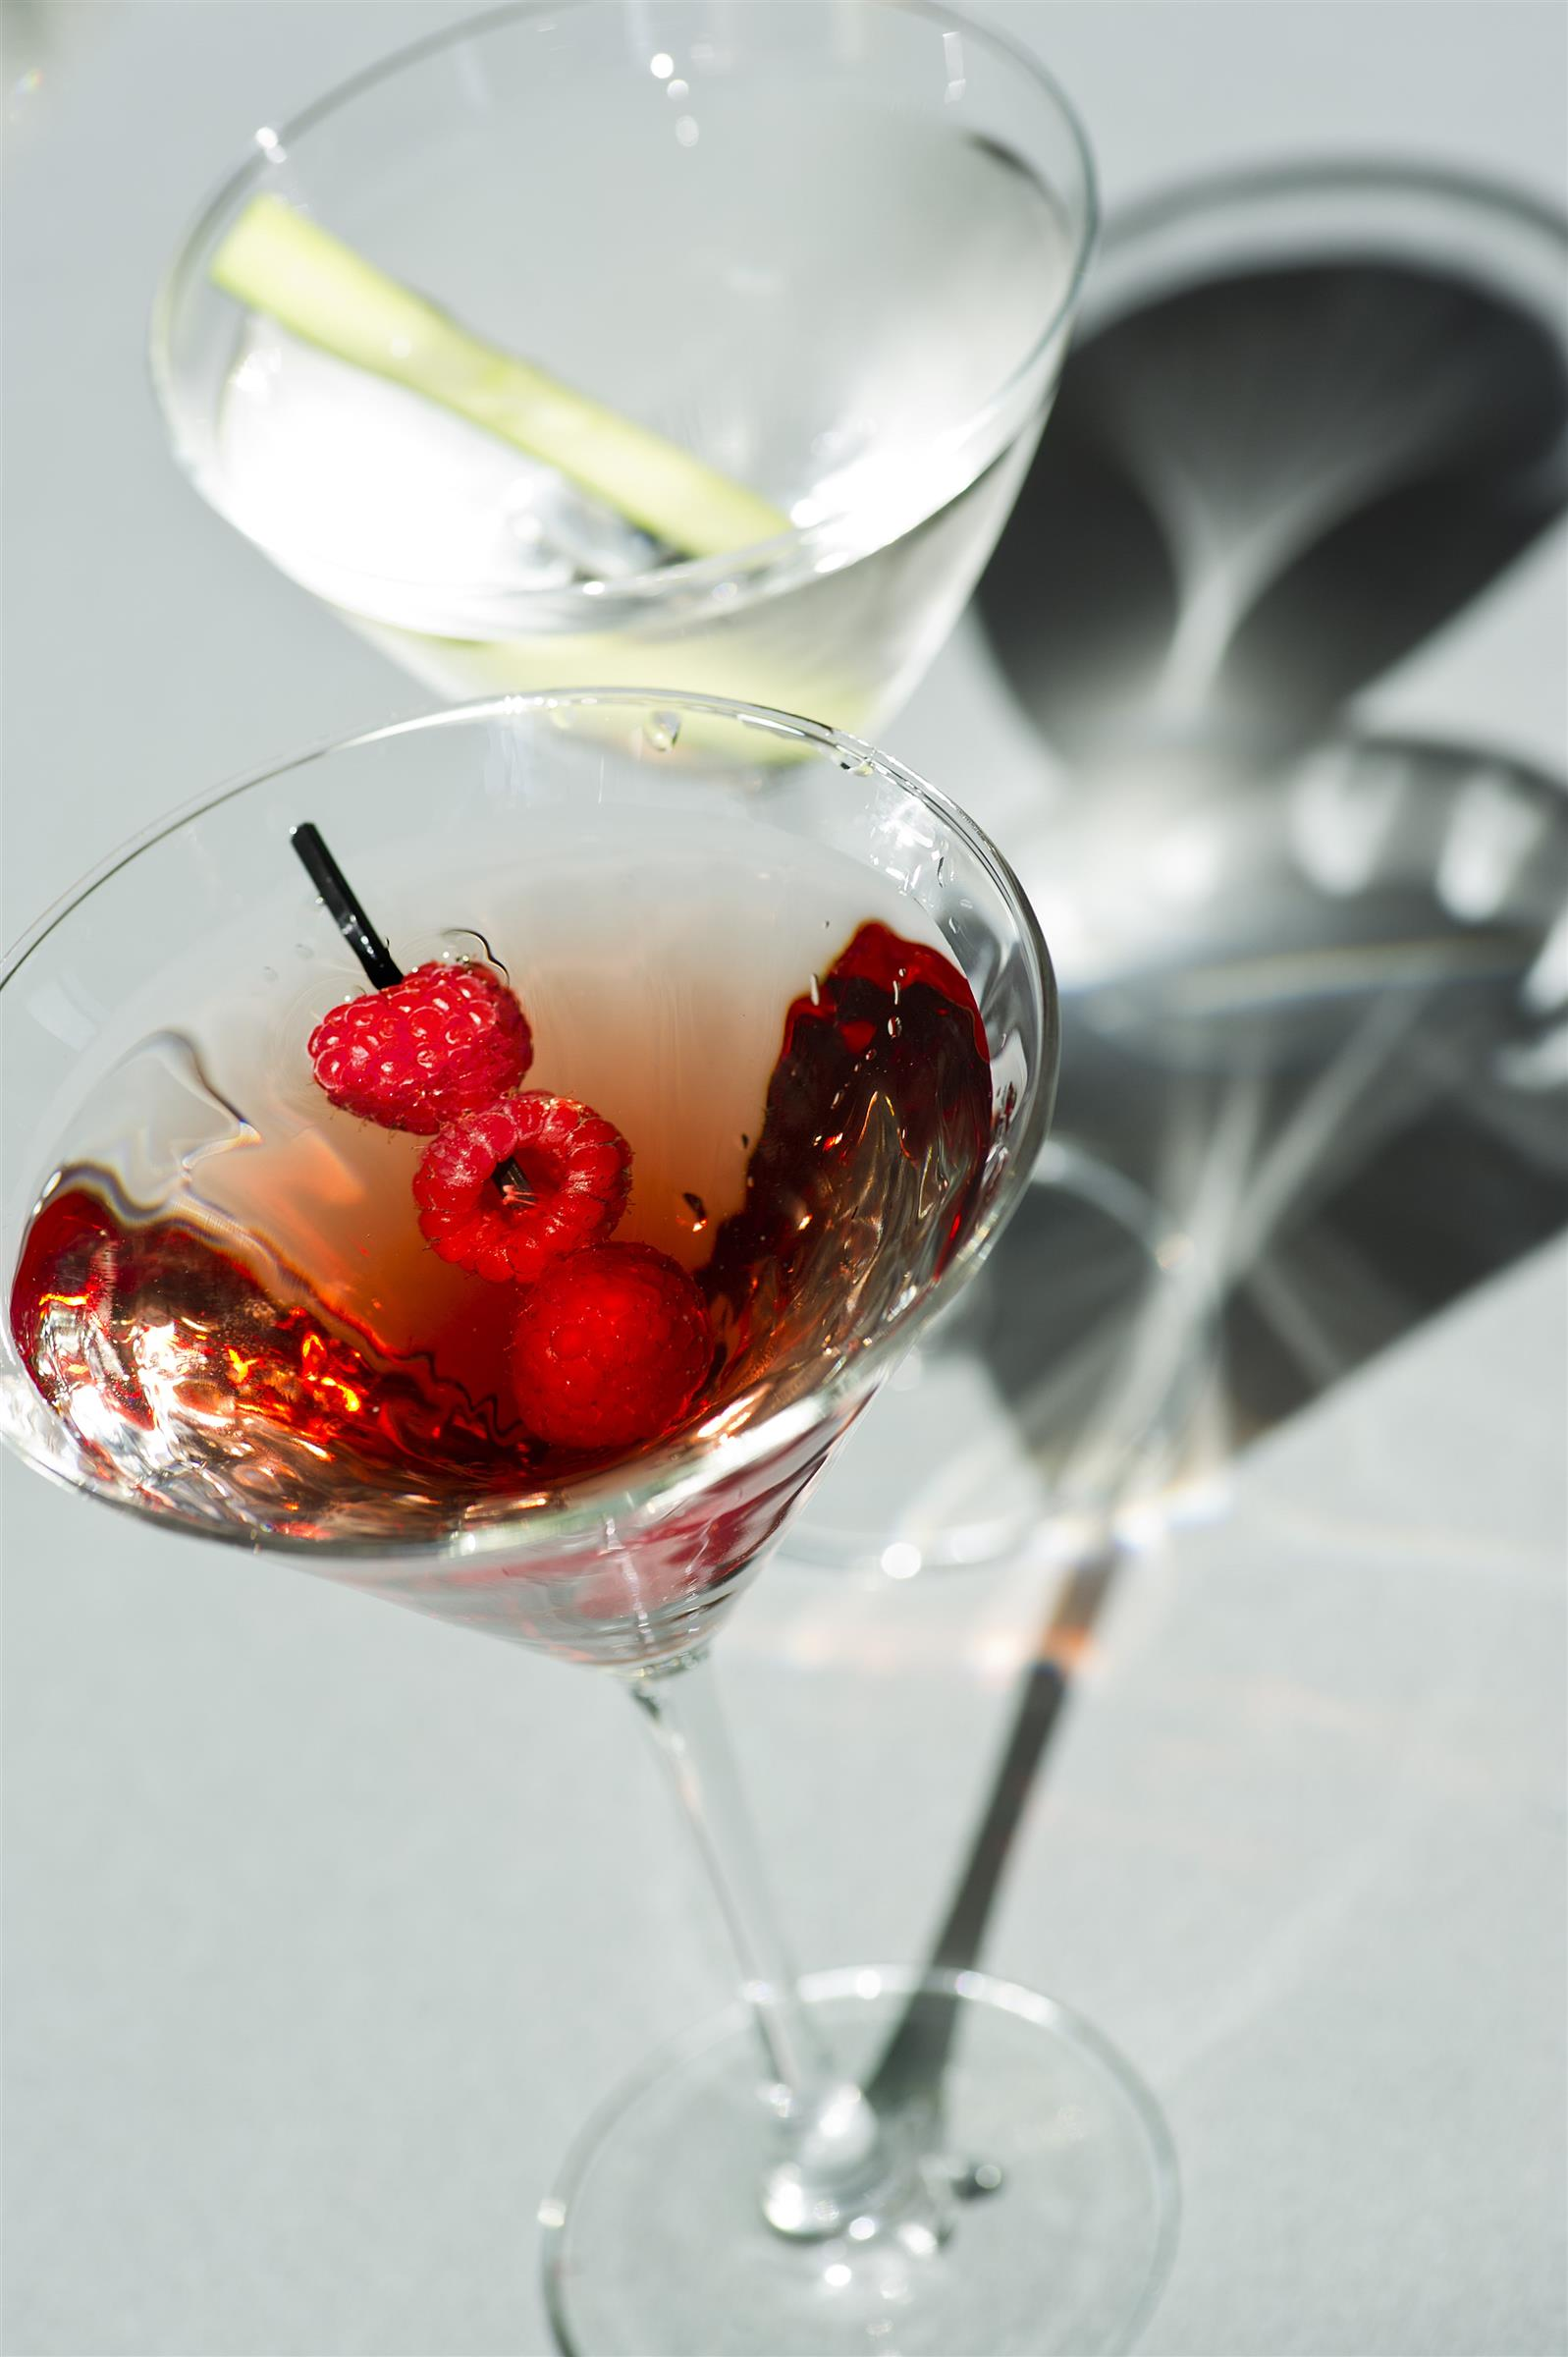 one cocktail with raspberry as a garnish next to another cocktail with lemongrass as a garnish